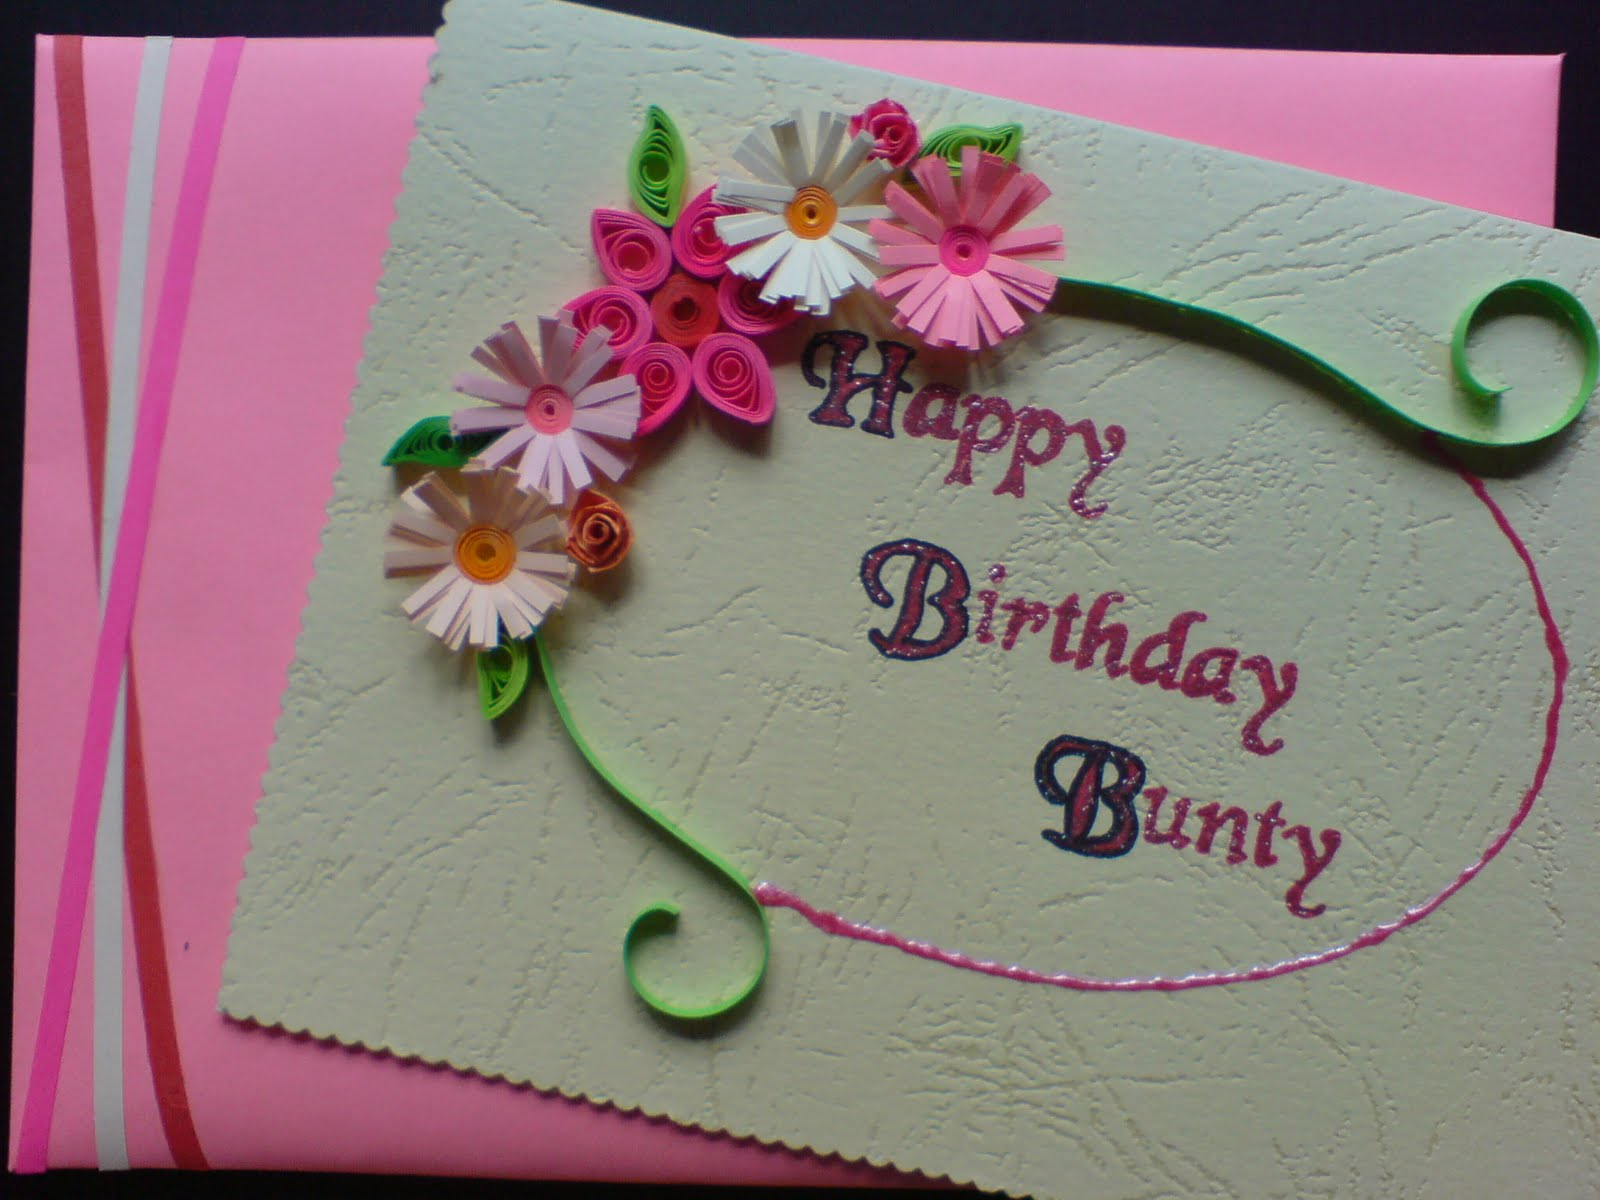 handmade birthday greeting card designs ; new-Handmade-Birthday-Cards-Designs